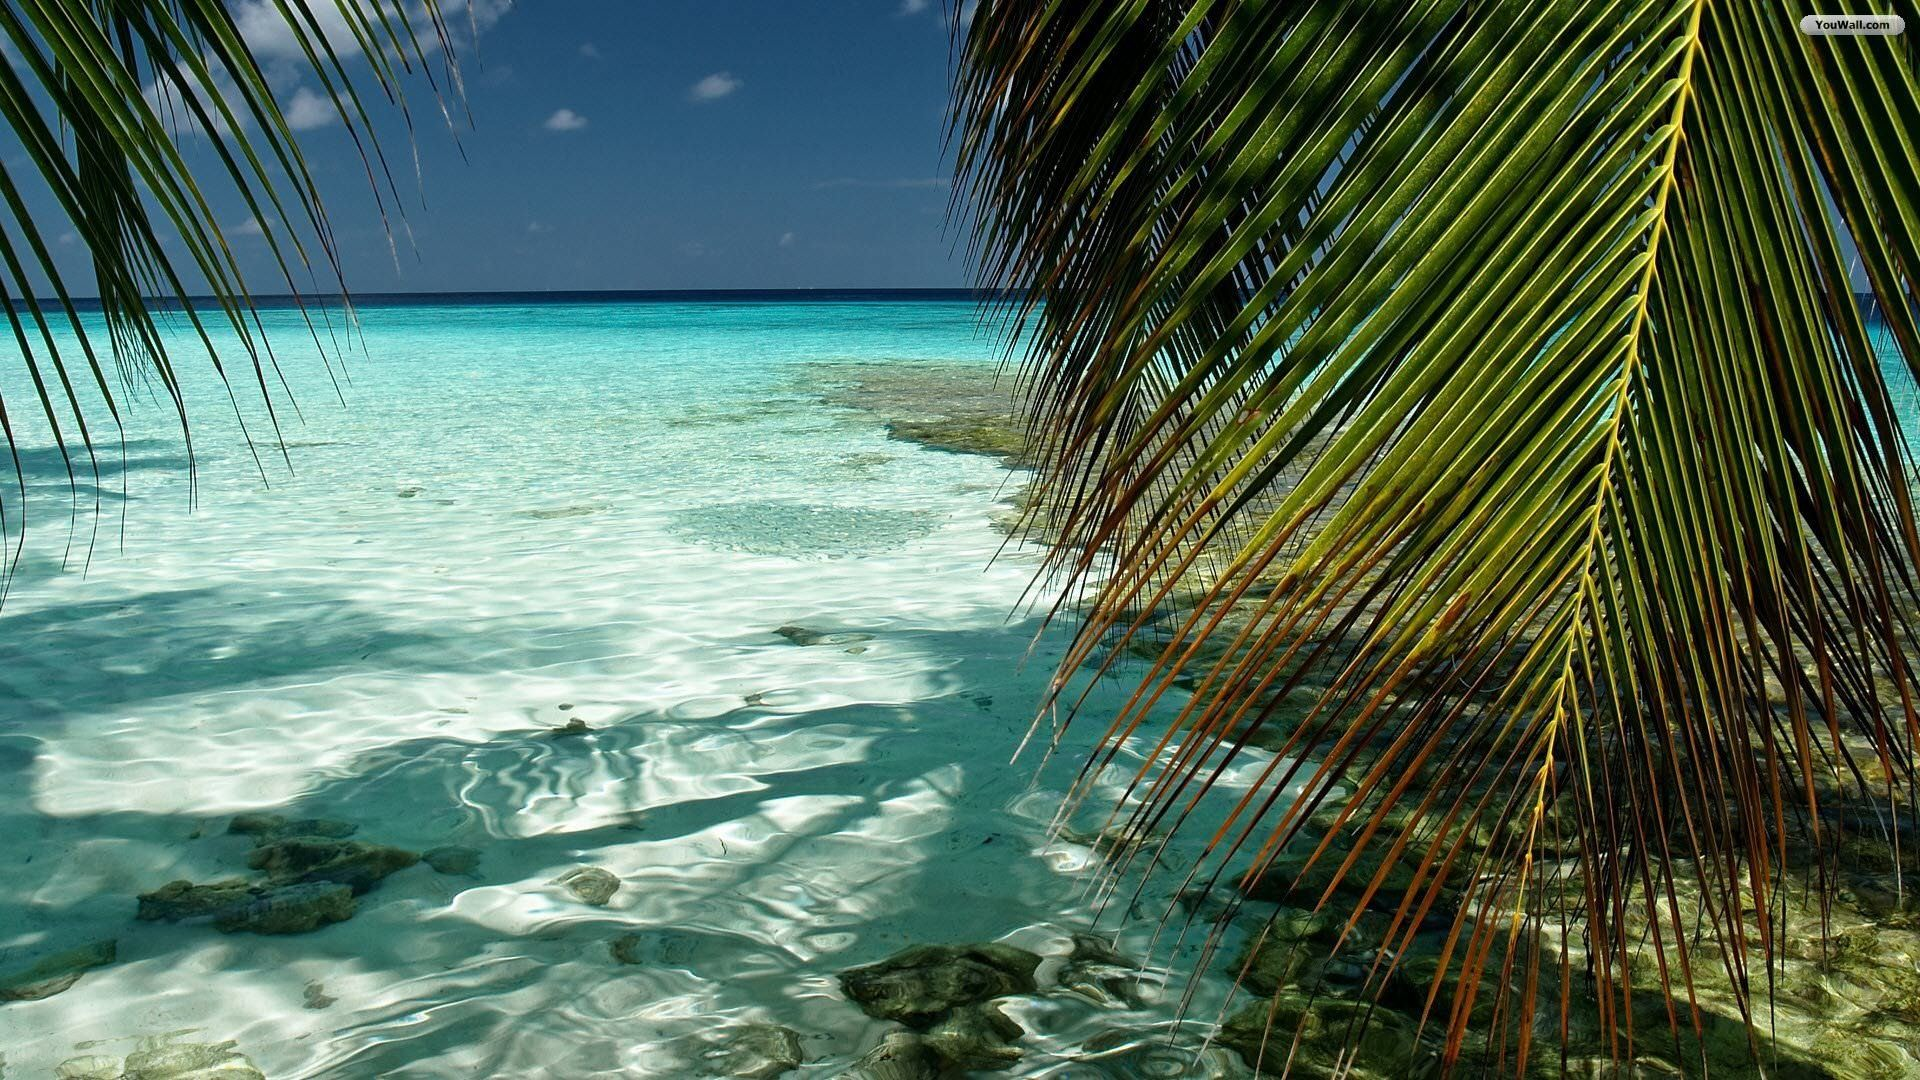 Beach Free Ipad Wallpapers: Tropical Beach Background (64+ Images